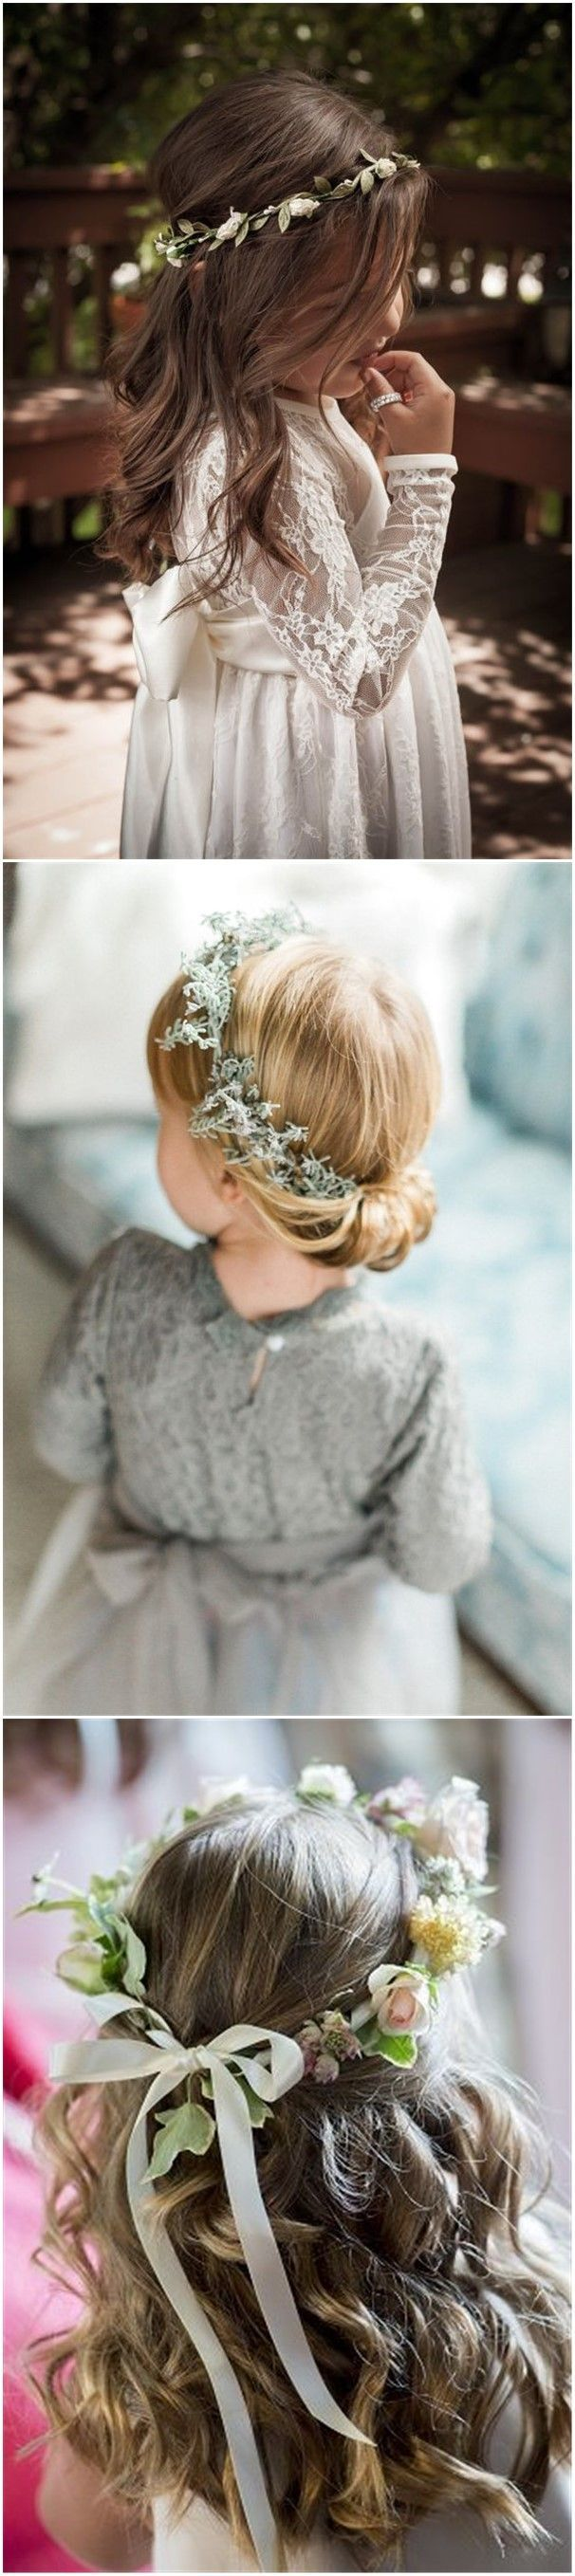 Flower girls adorable flower girl hairstyles to get inspired